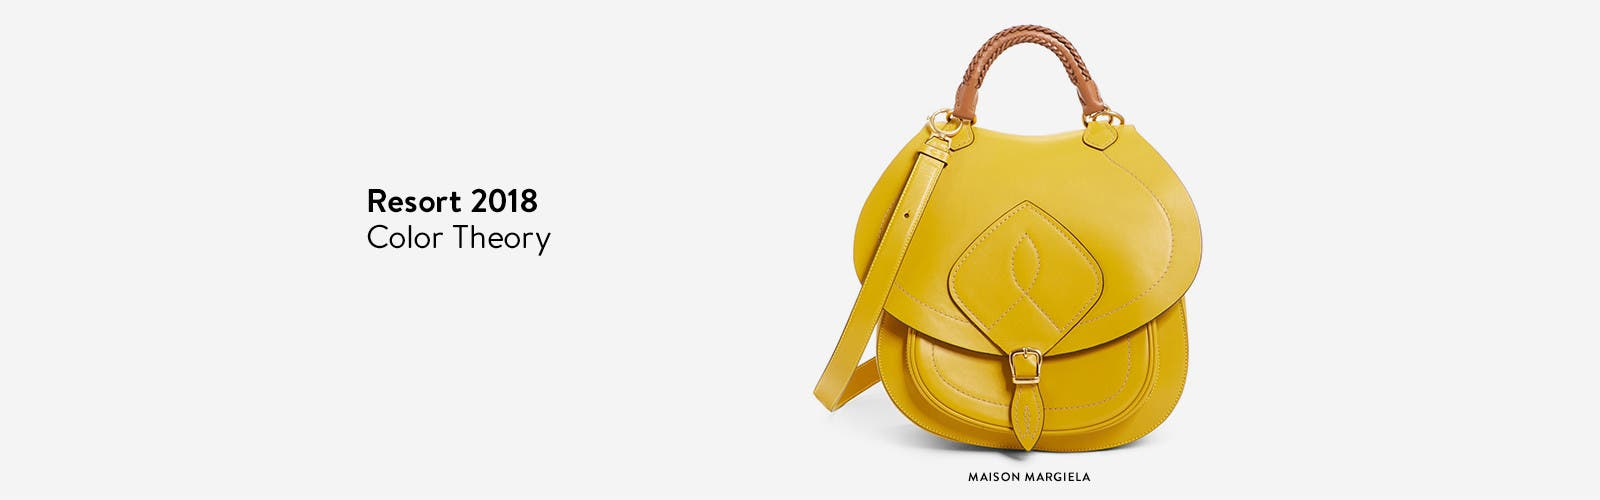 Designer resort 2018 collections to explore now: Maison Margiela top-handle saddle bag.